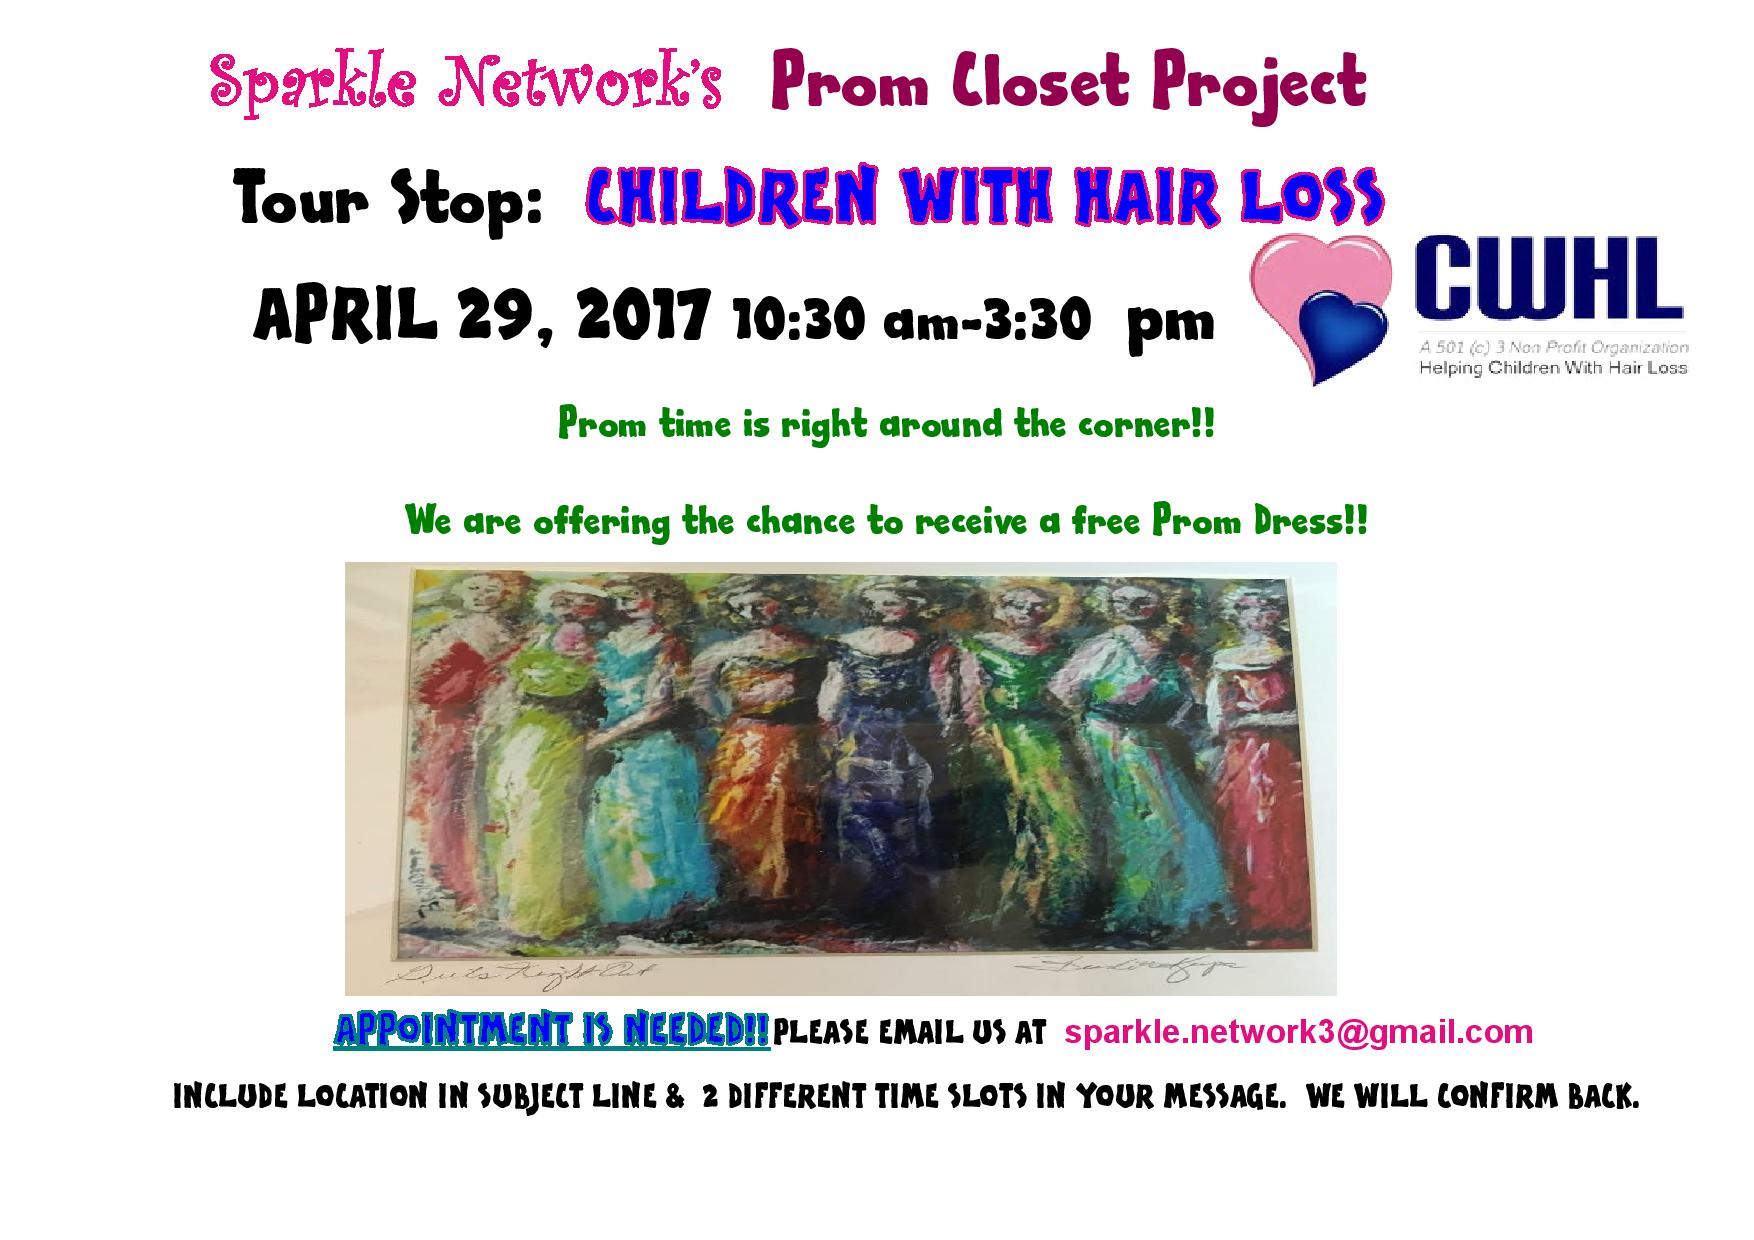 prom closet project children with hair loss stop 2017-page-001